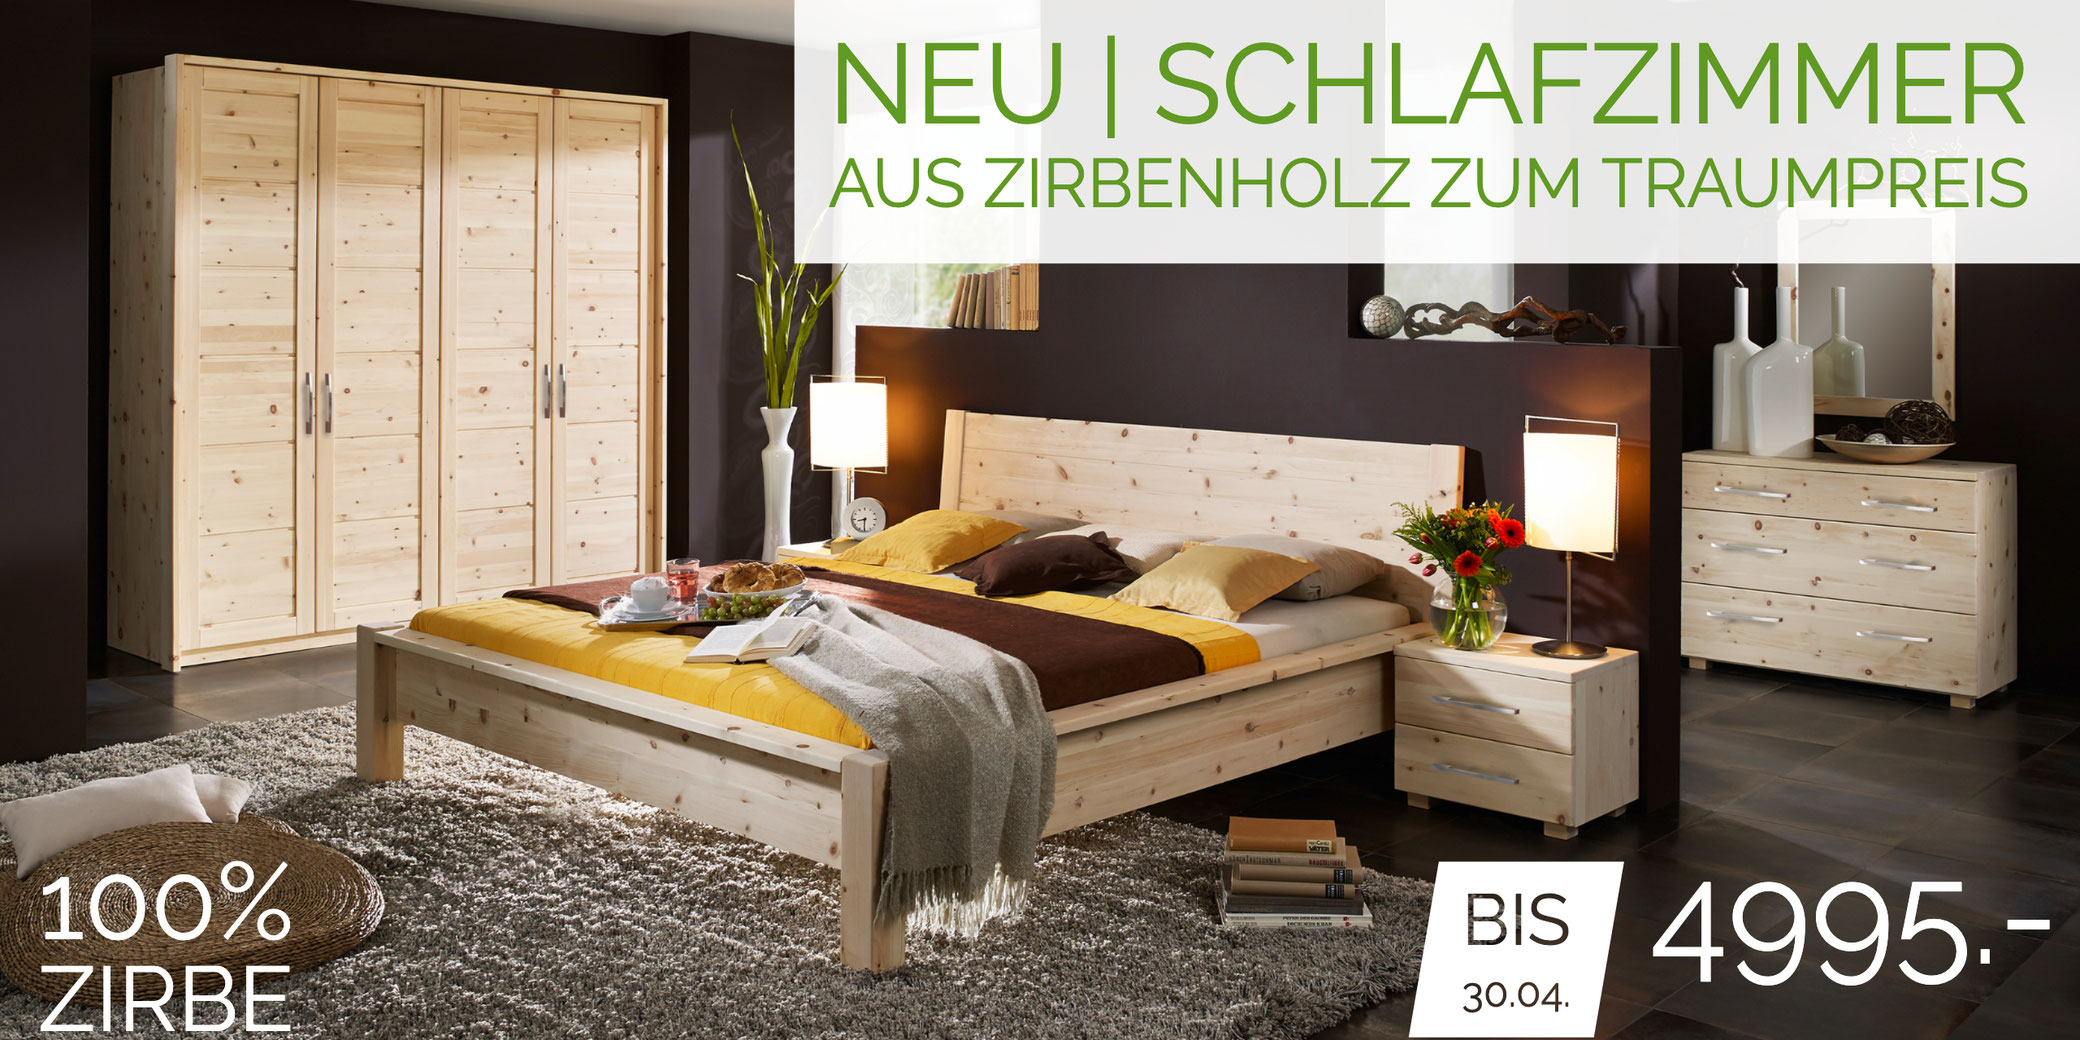 massivholzm bel auf ma naturnah m bel moderne massivholzm bel. Black Bedroom Furniture Sets. Home Design Ideas